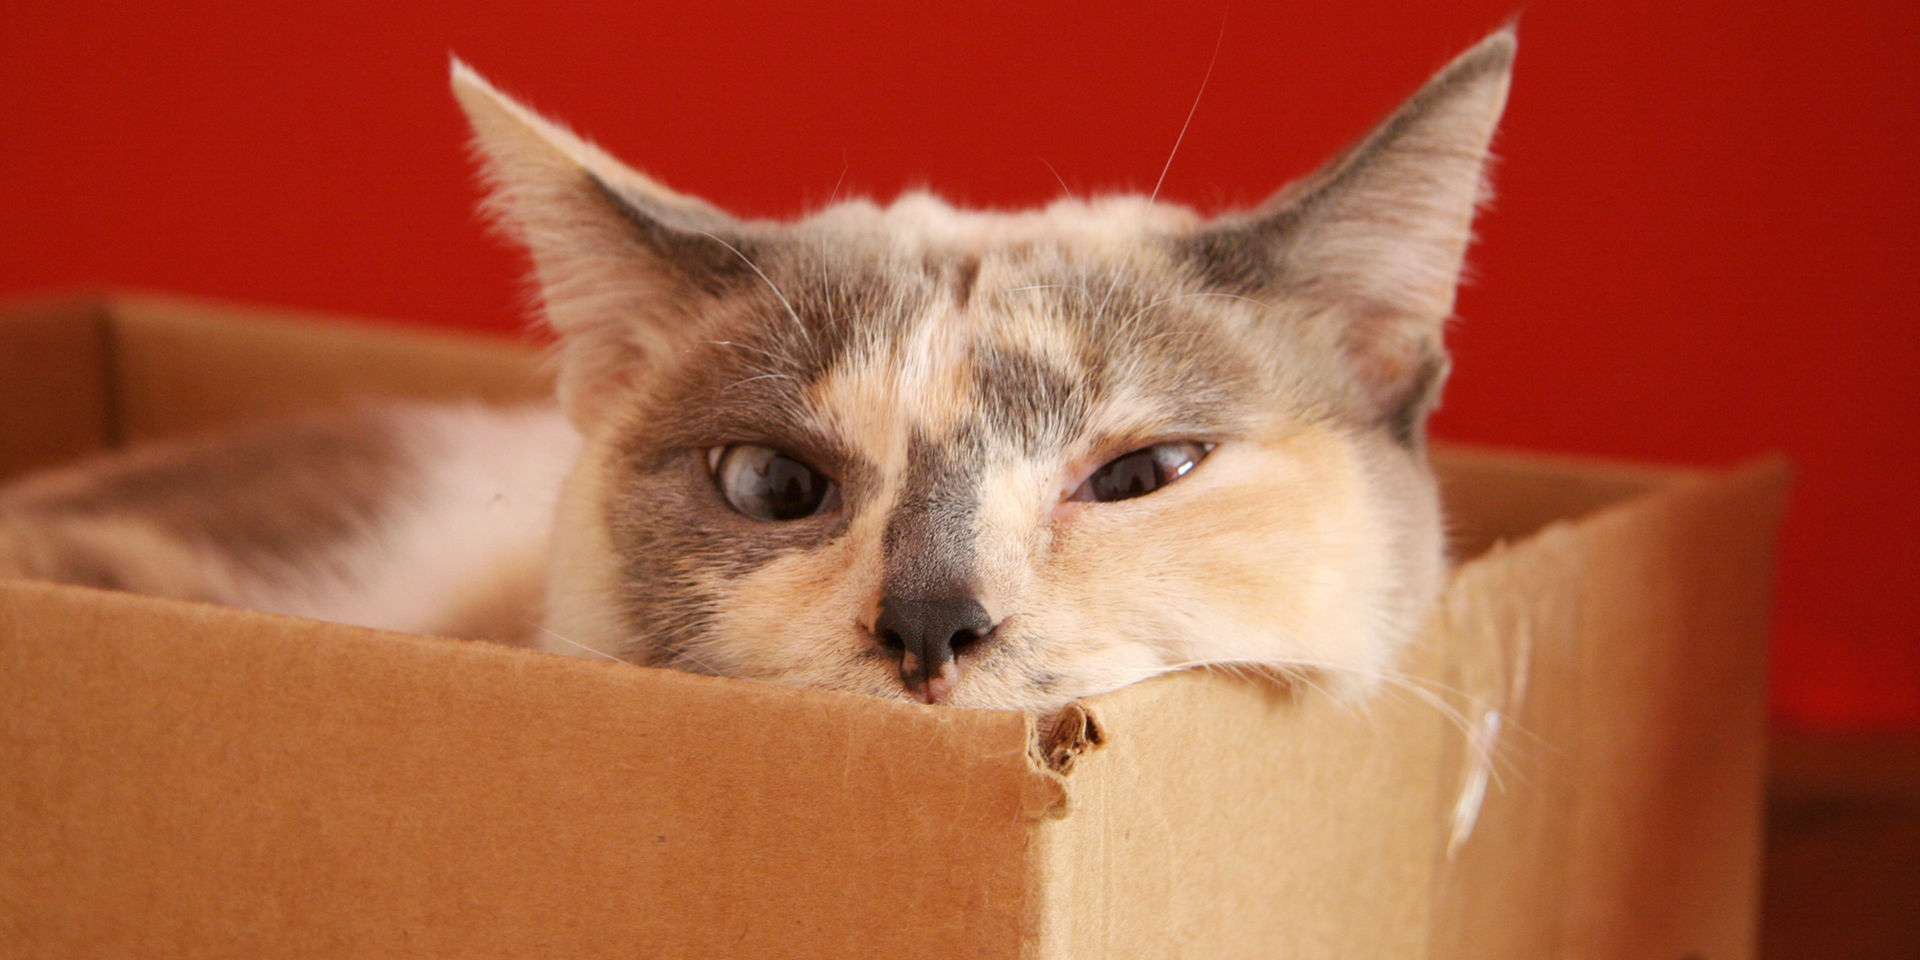 Cat in a box. Photo credit: Giane Portal via Free Images.